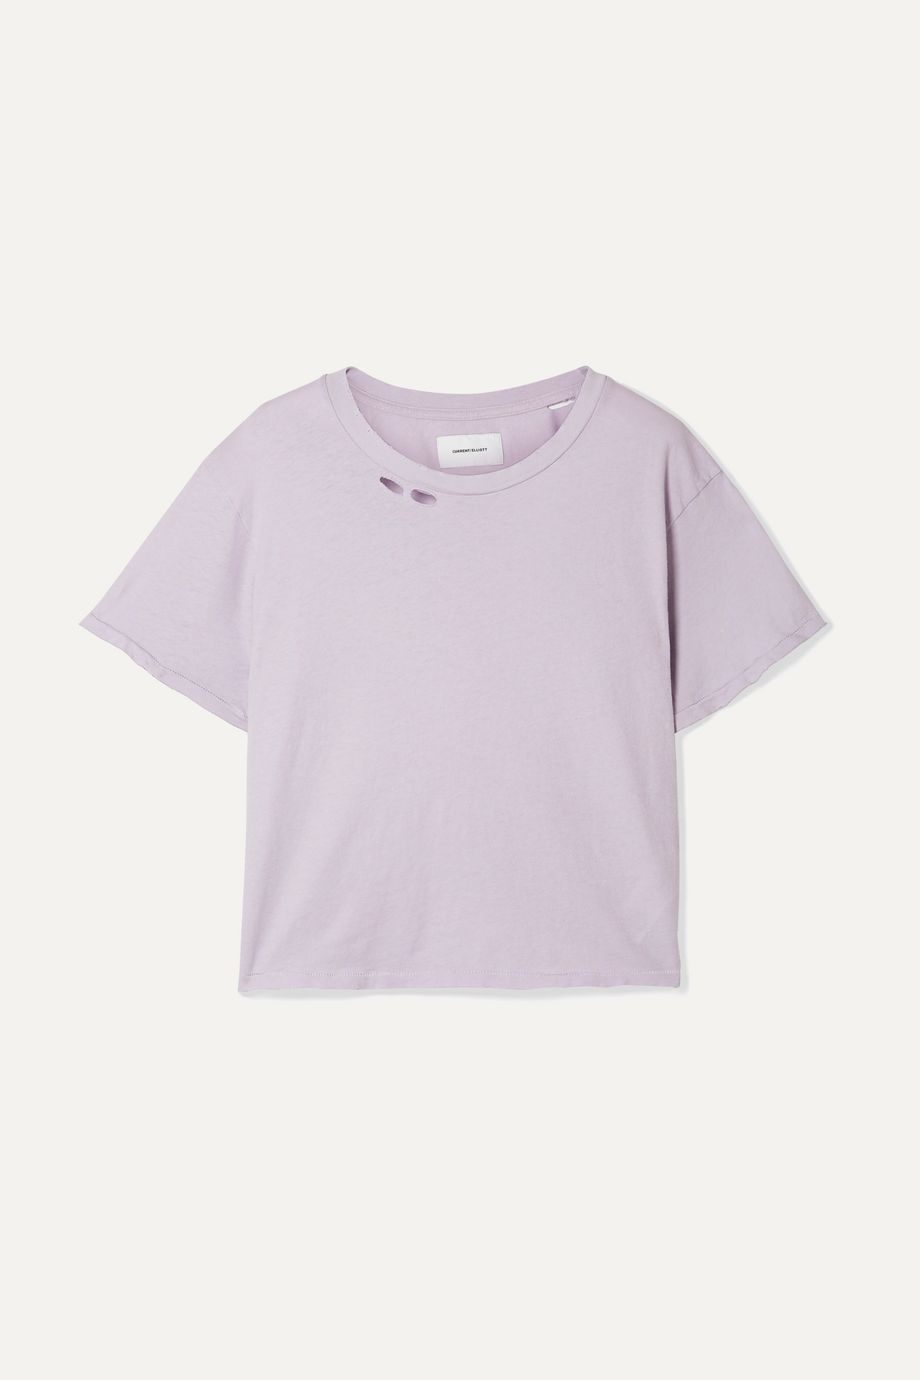 Current/Elliott The Short distressed cotton-jersey T-shirt